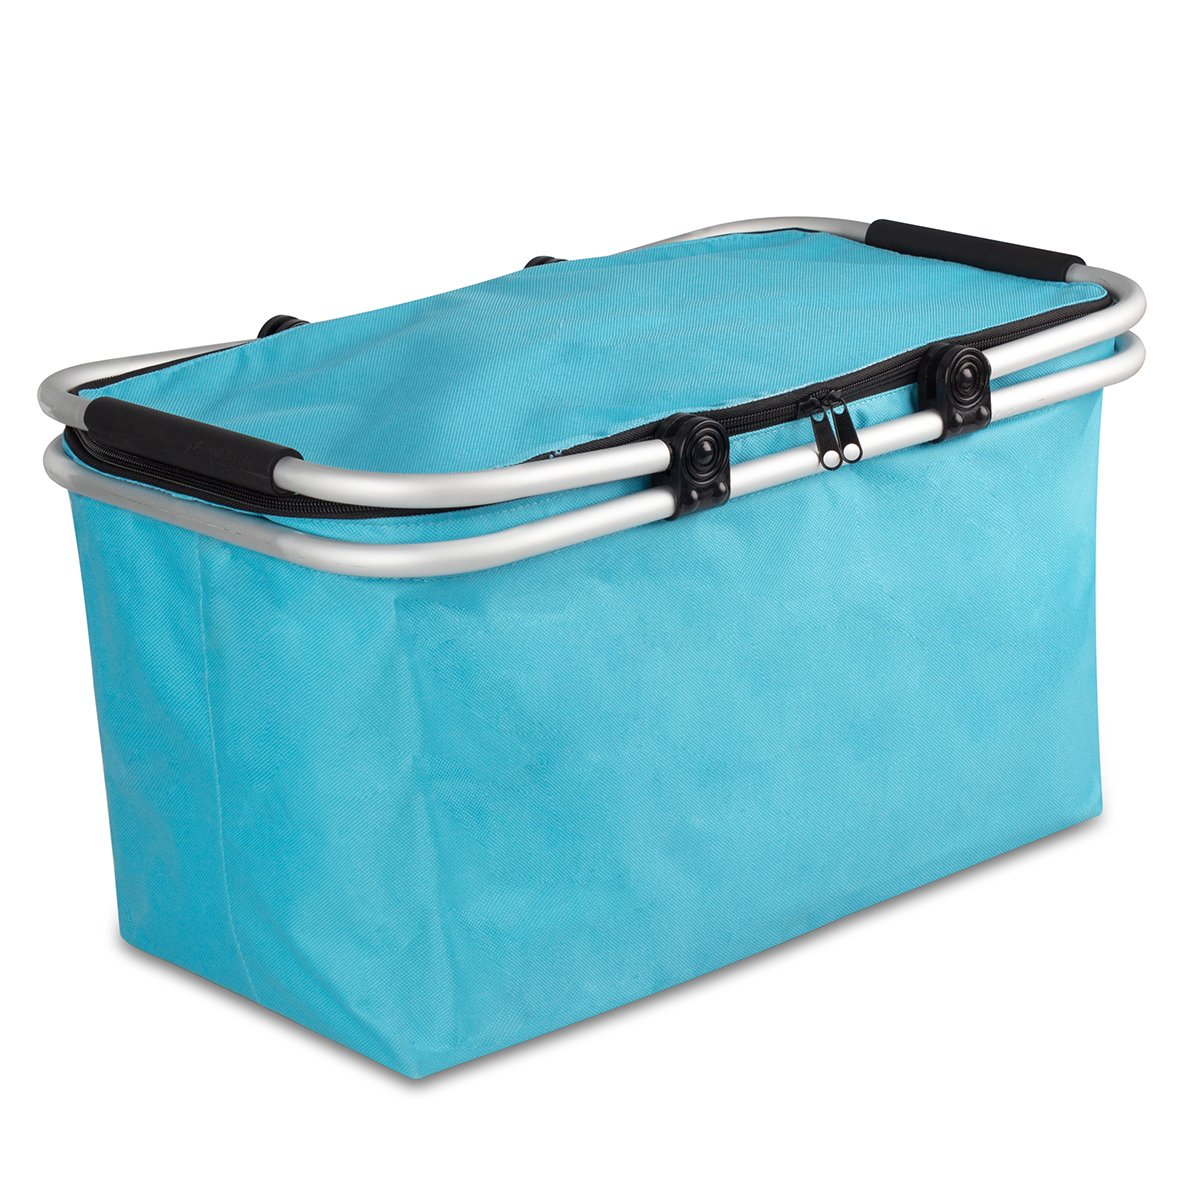 WISHPOOL Oxford Insulated Picnic Basket Lunch Bag Reusable Collapsible Cooler Tote Box for Hiking (Bule)